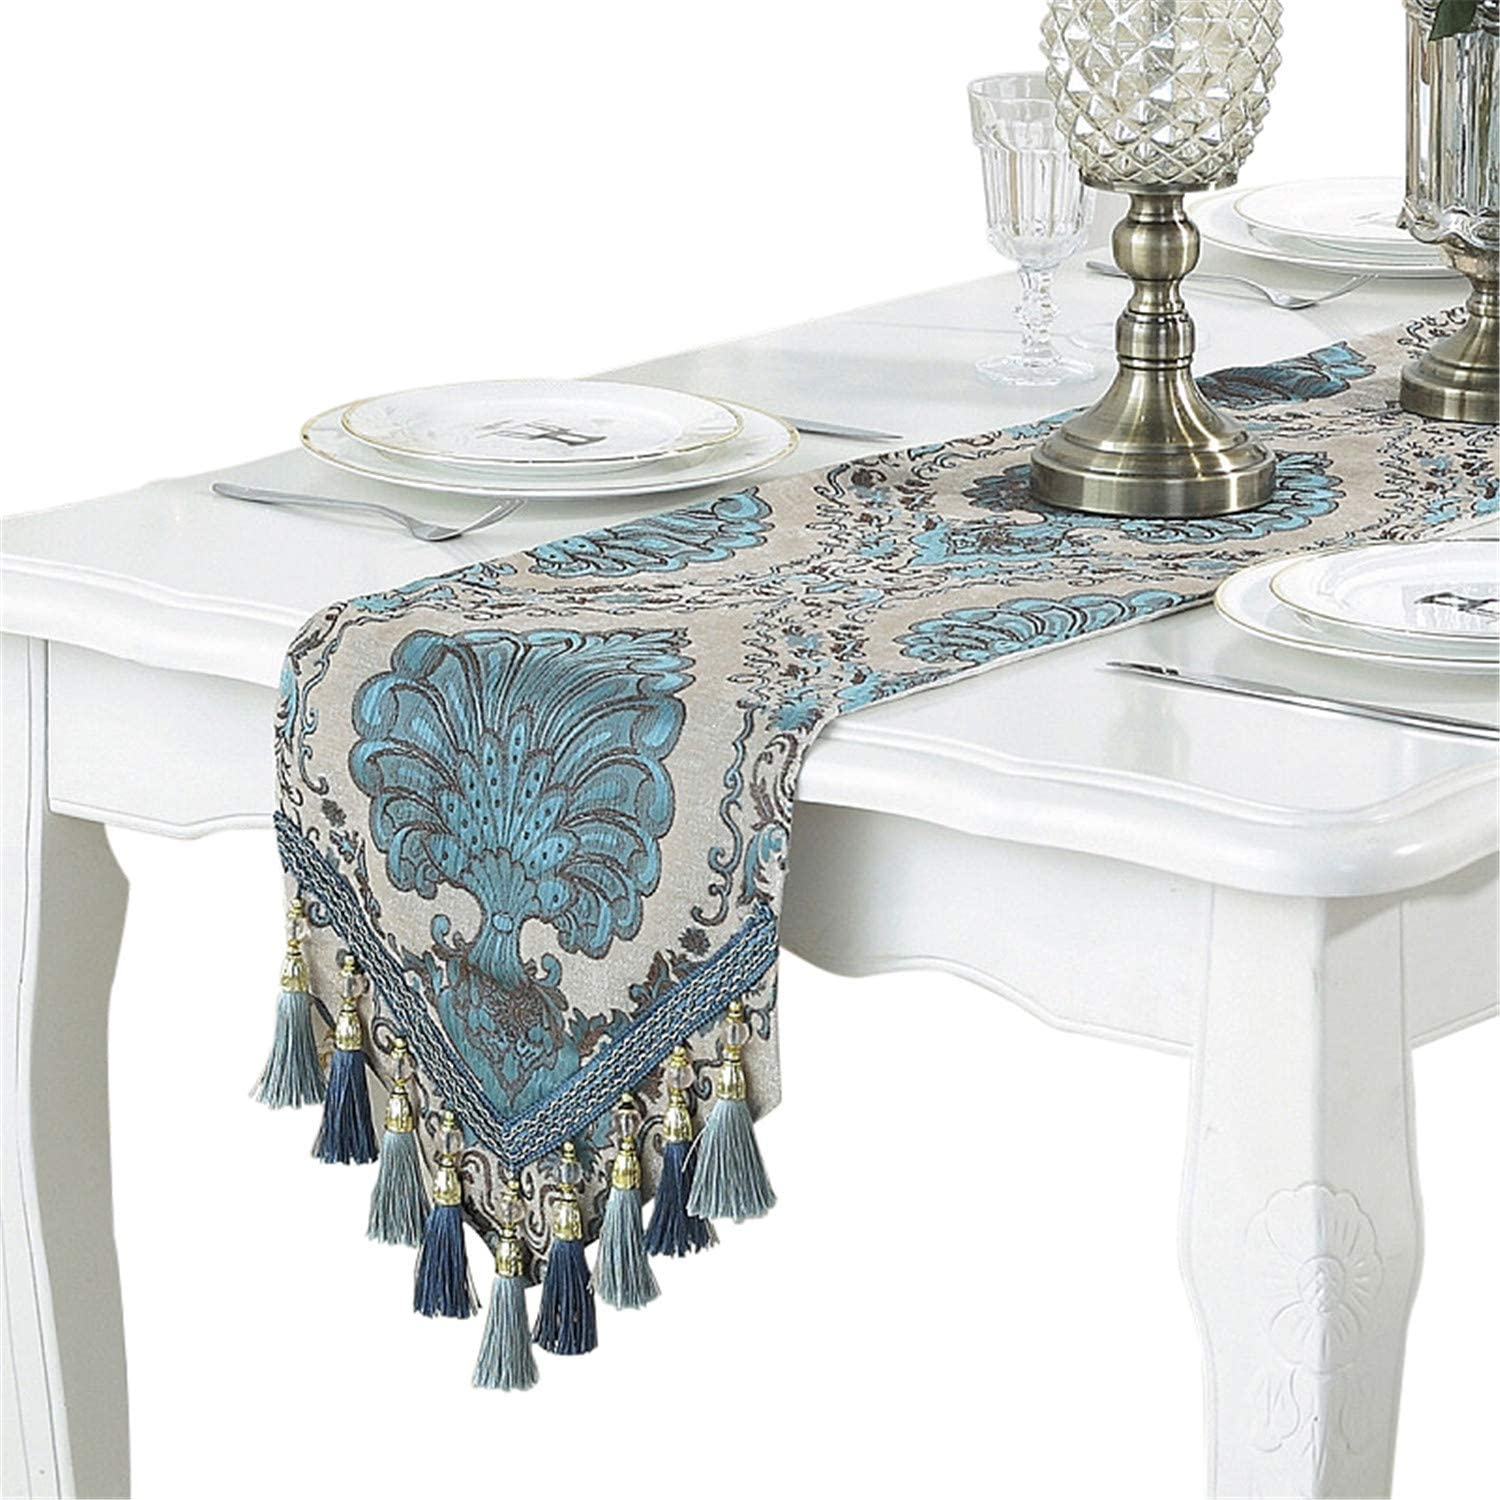 Direct stock discount Embroidery Luxury Table Runner Washington Mall Jacquard with Fabric